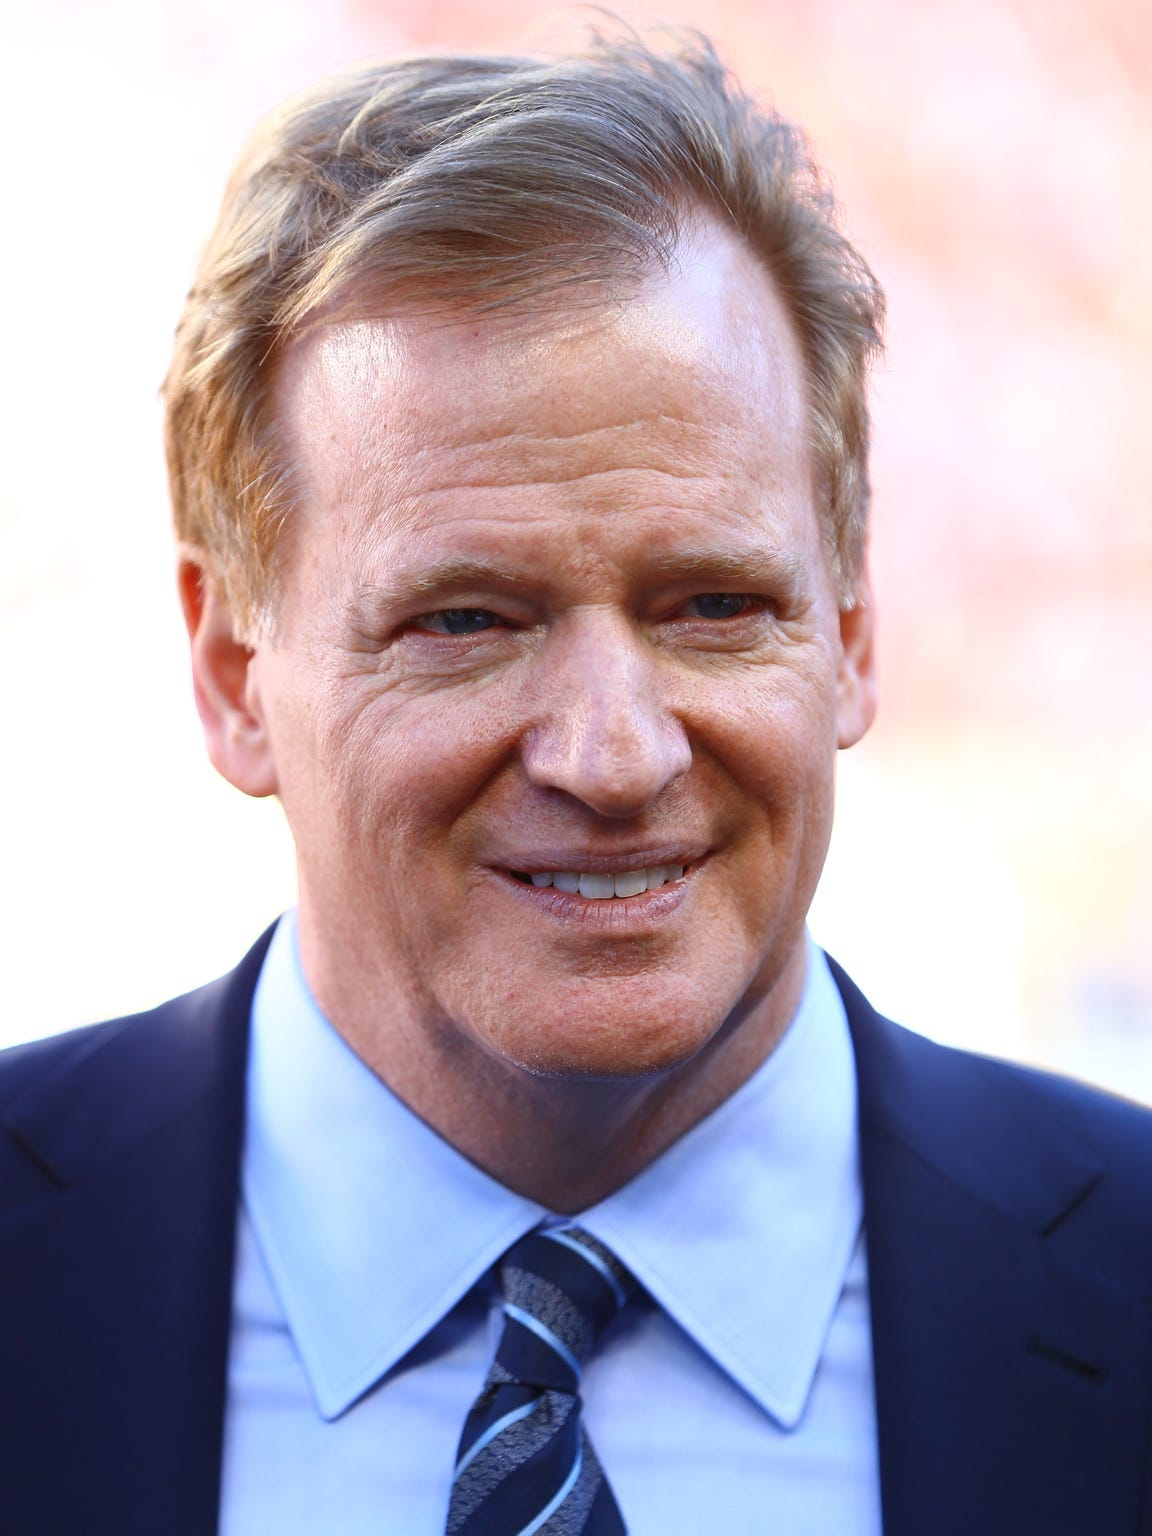 Roger Goodell, commissioner of the NFL.